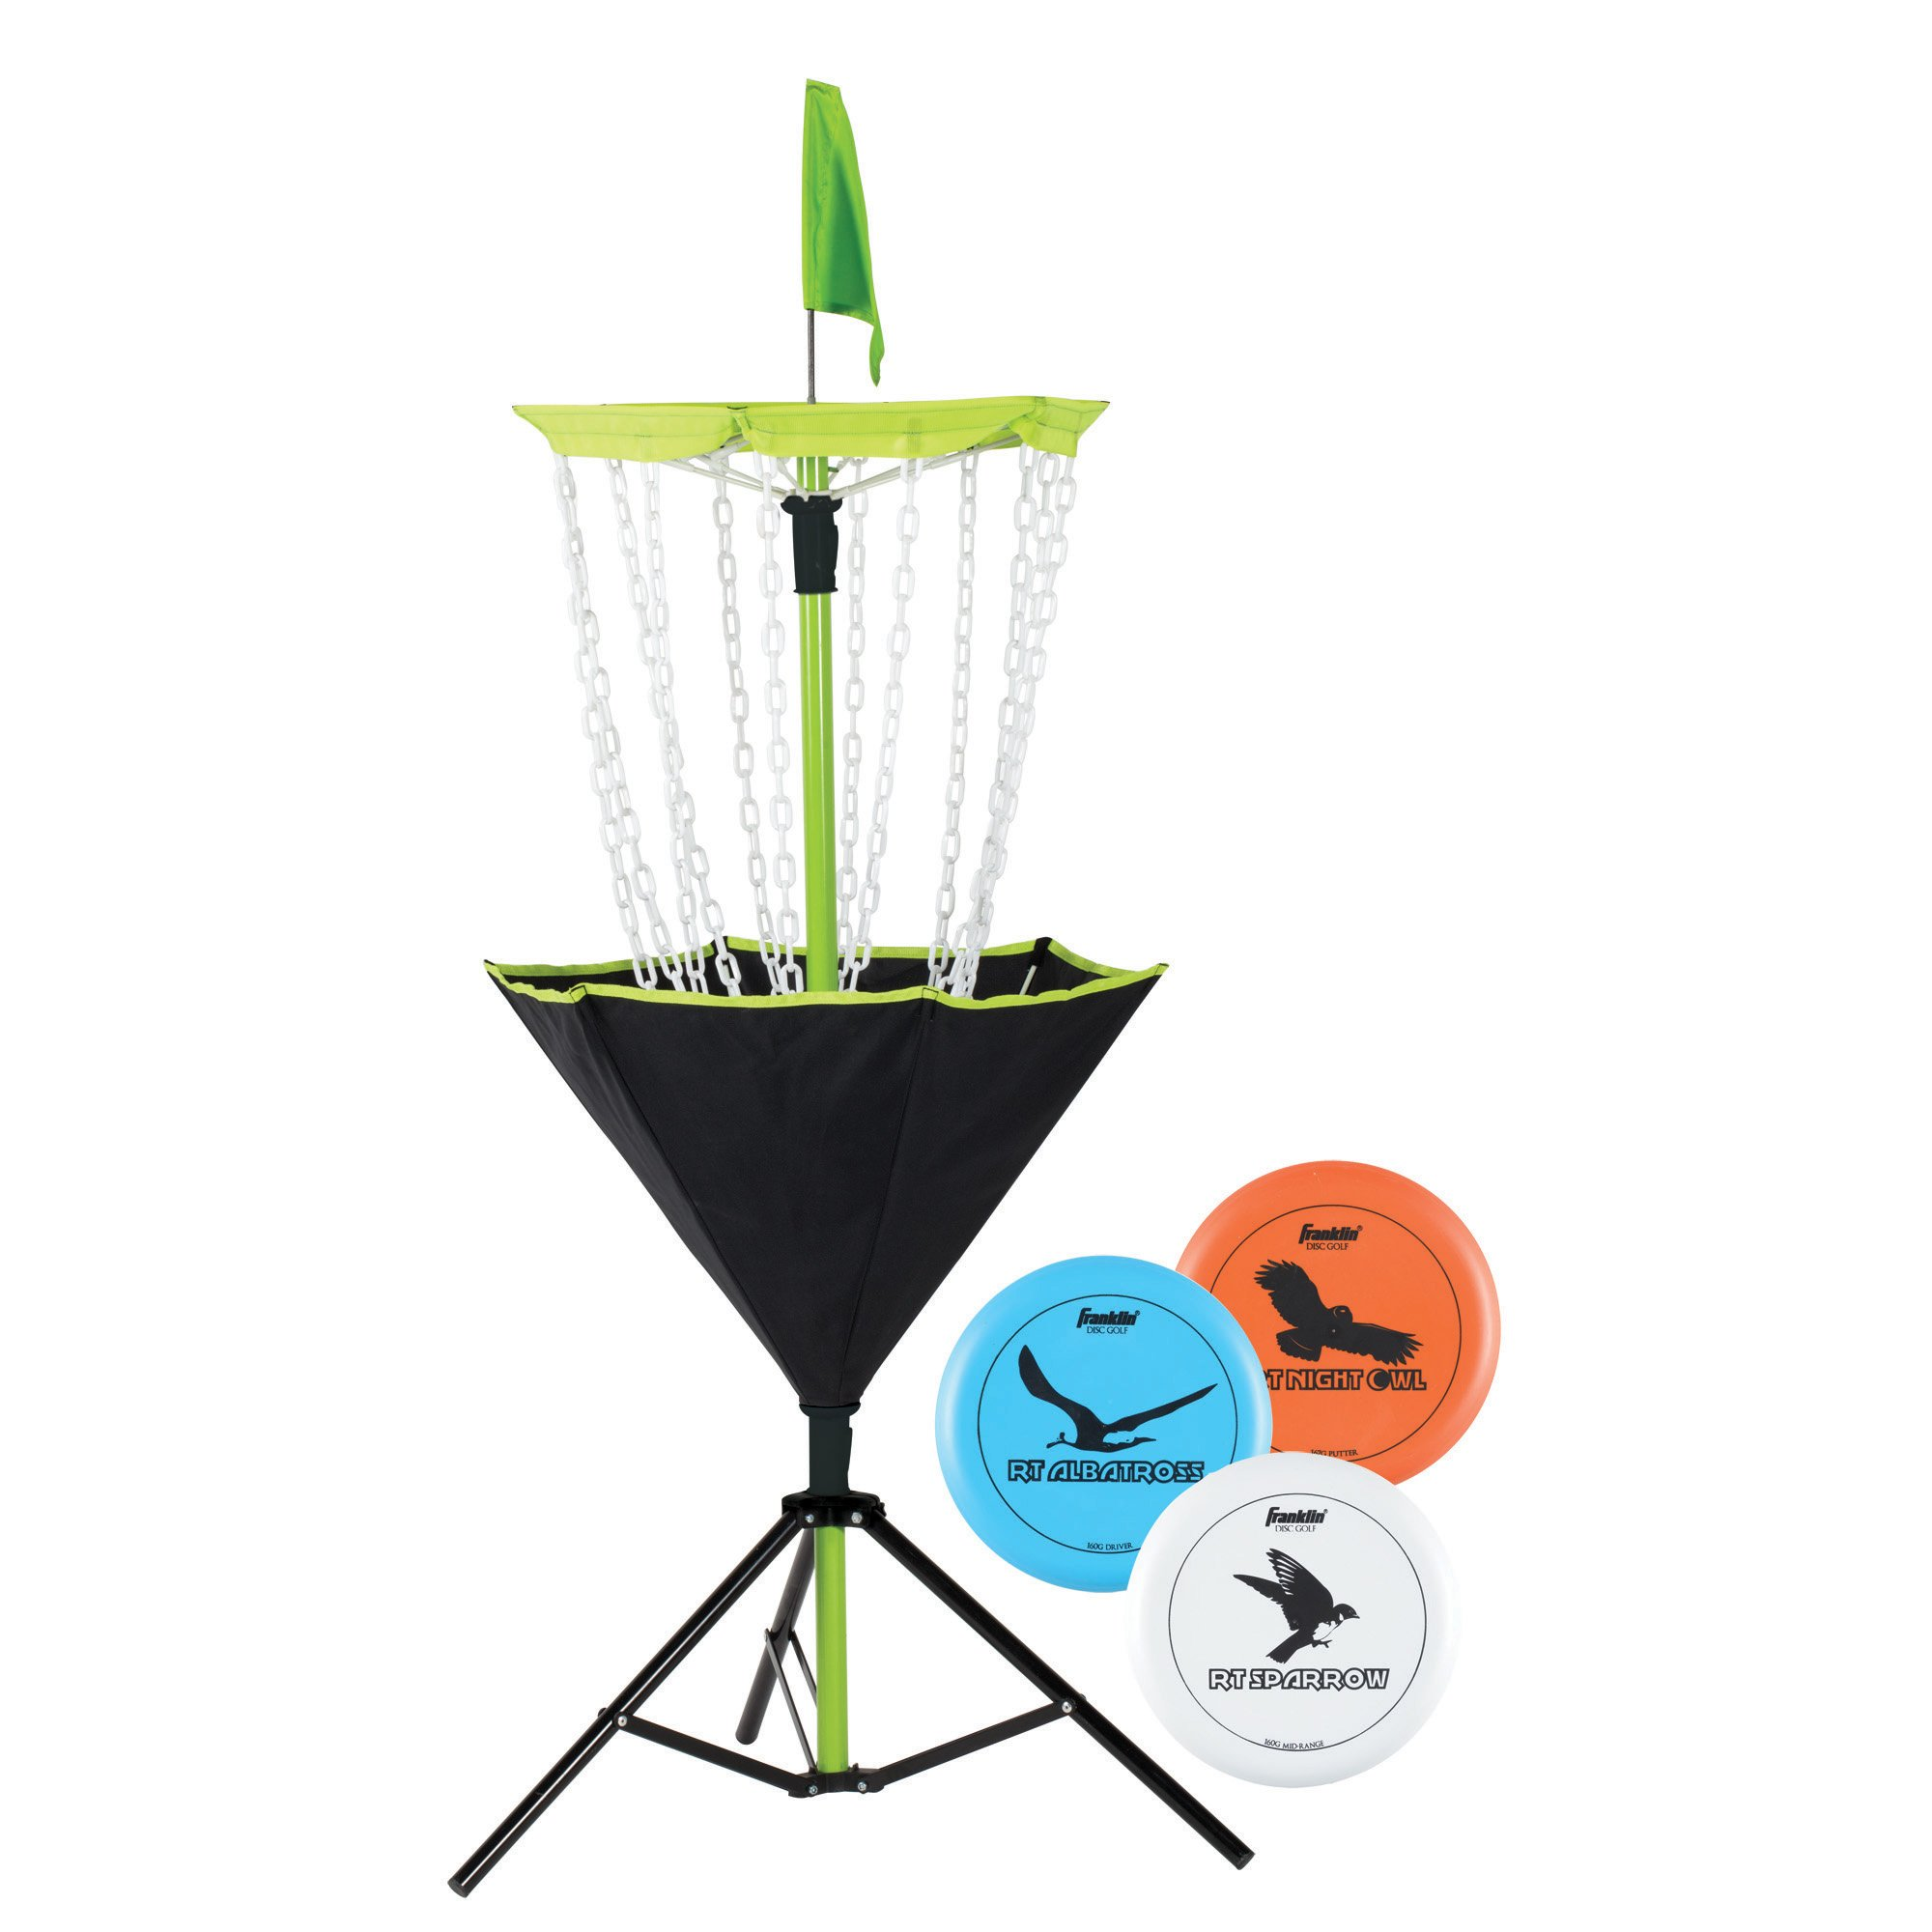 Franklin Sports Disc Golf Target Set - Includes Three Golf Discs and Carrying Bag